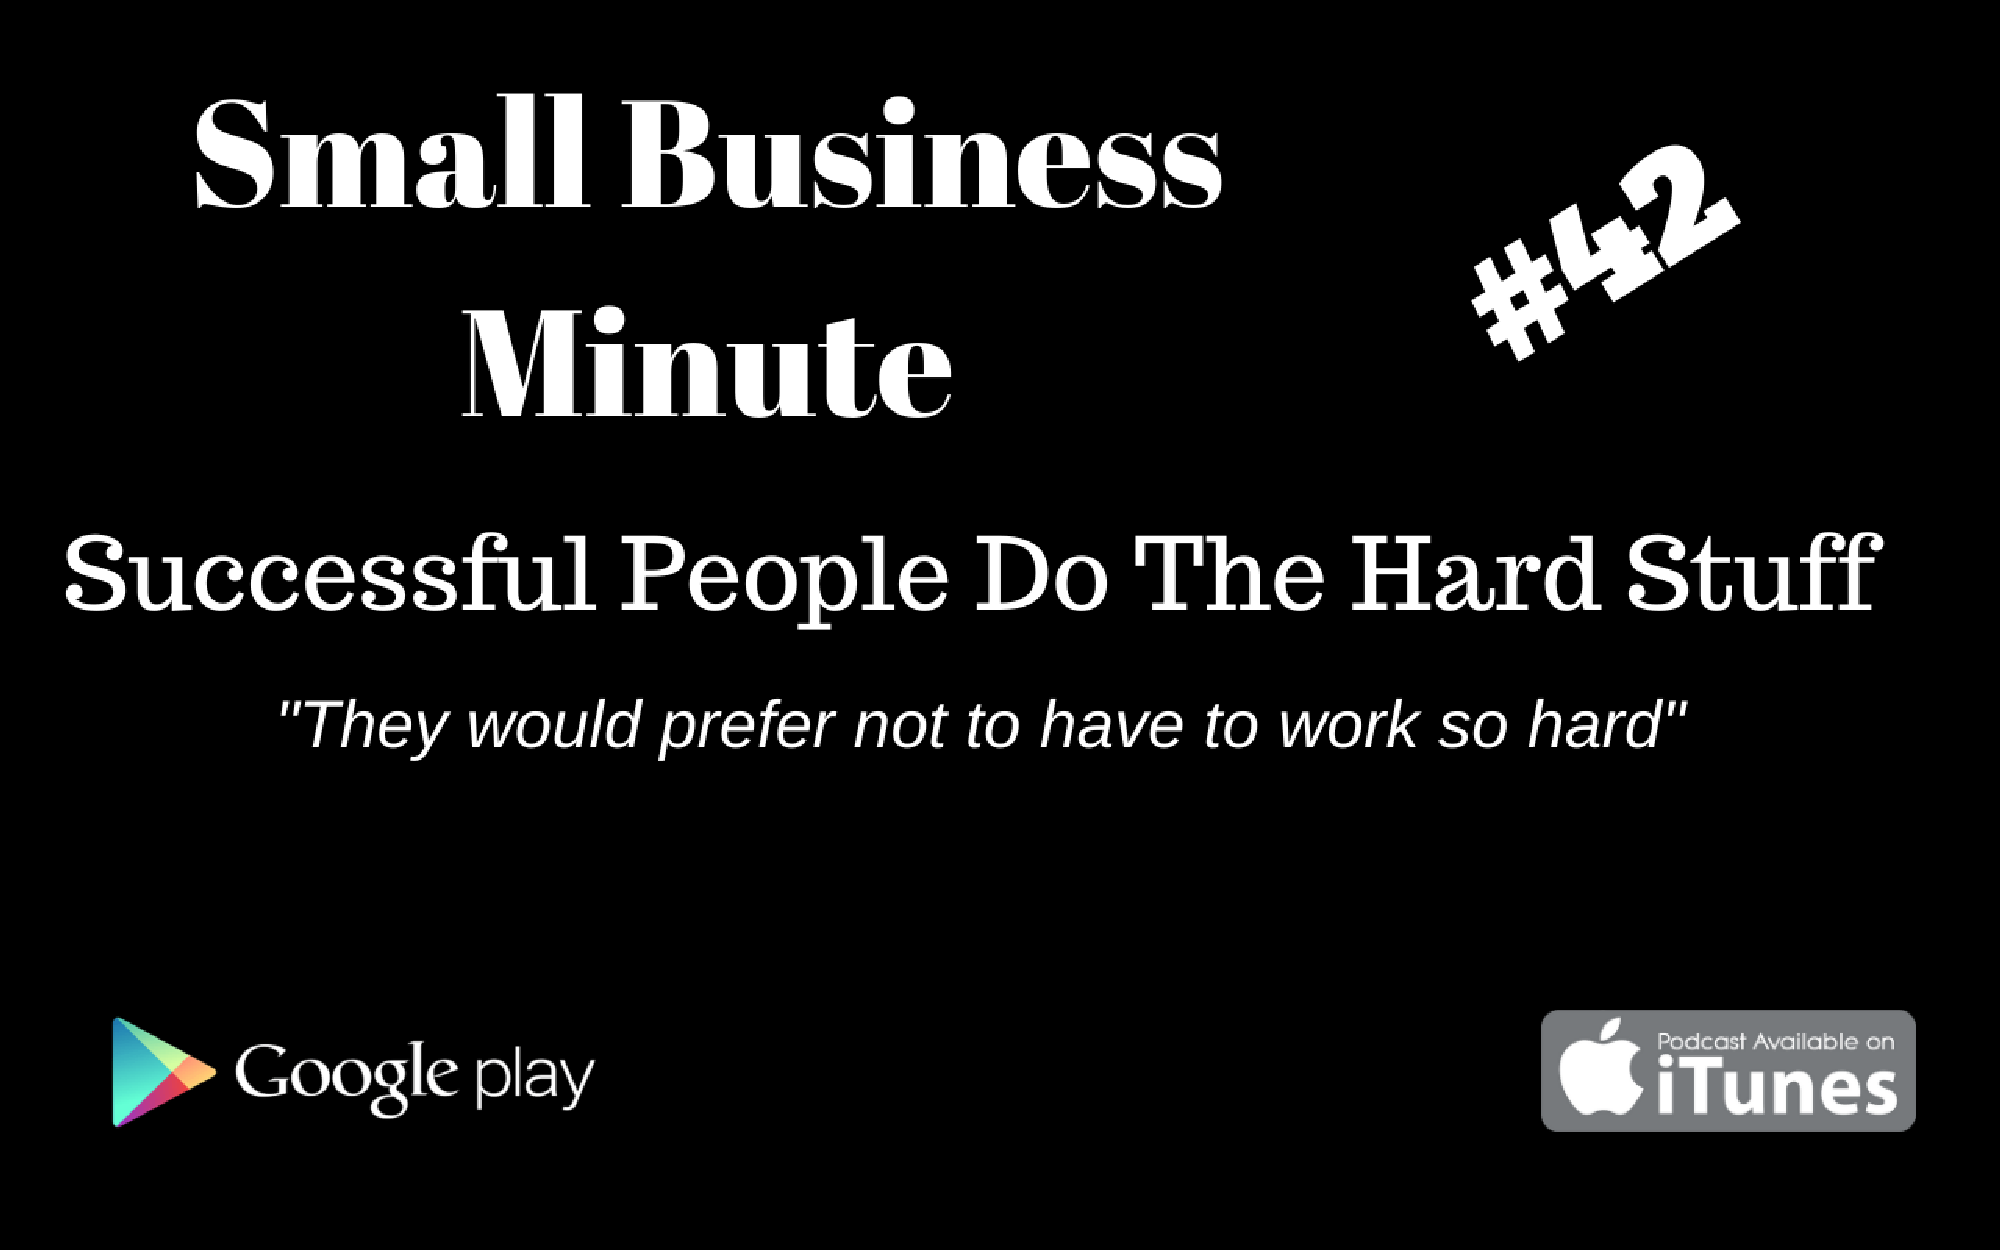 Small Business Minute #42 Successful People Do The Hard Stuff